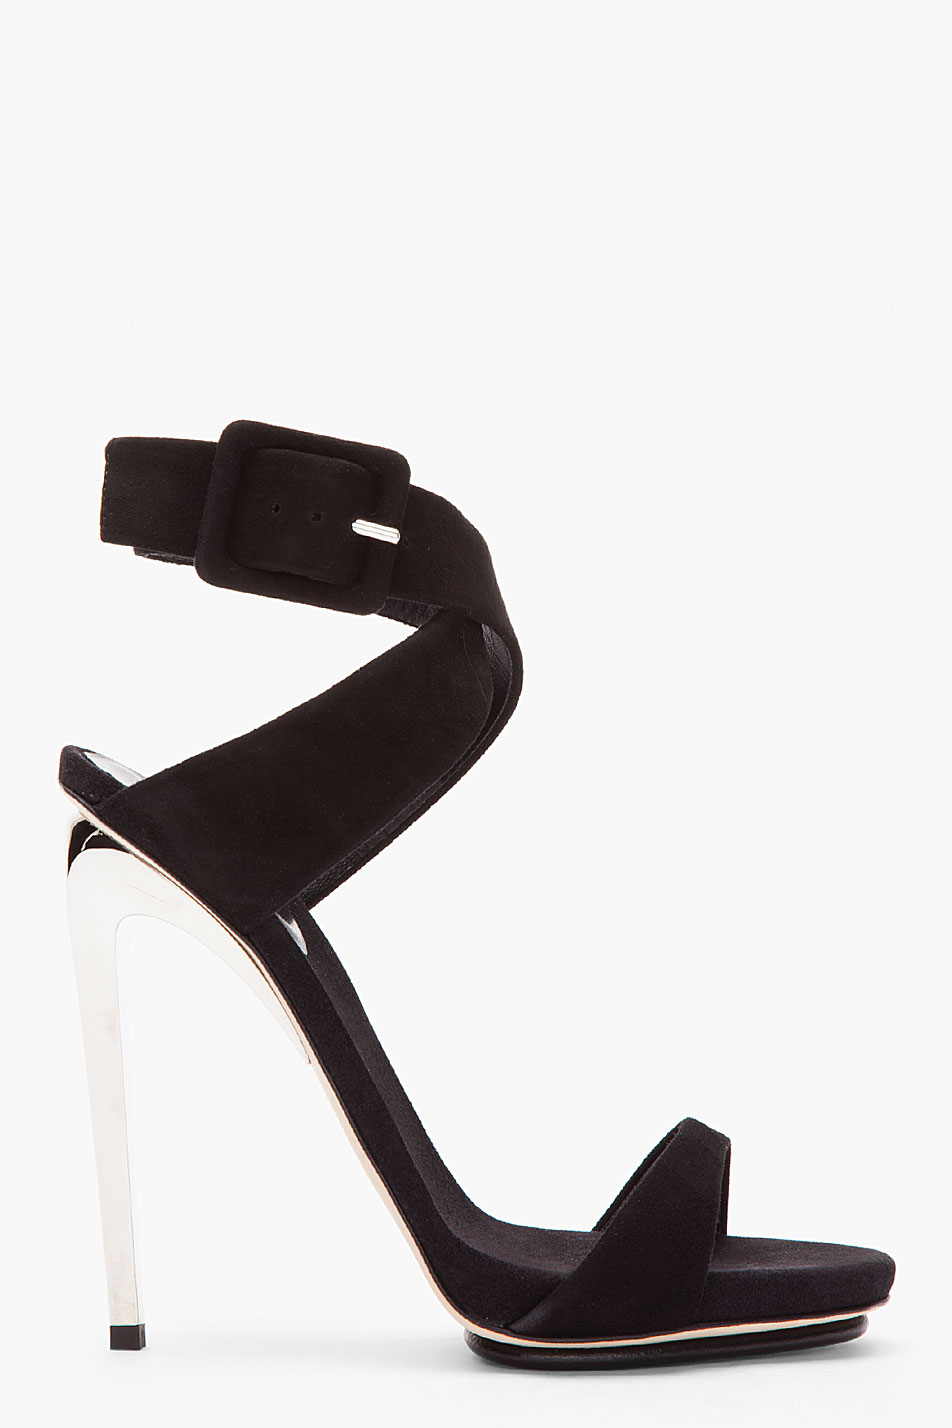 Giuseppe zanotti Black Suede and Silver Alien 115 Heels in Black ...